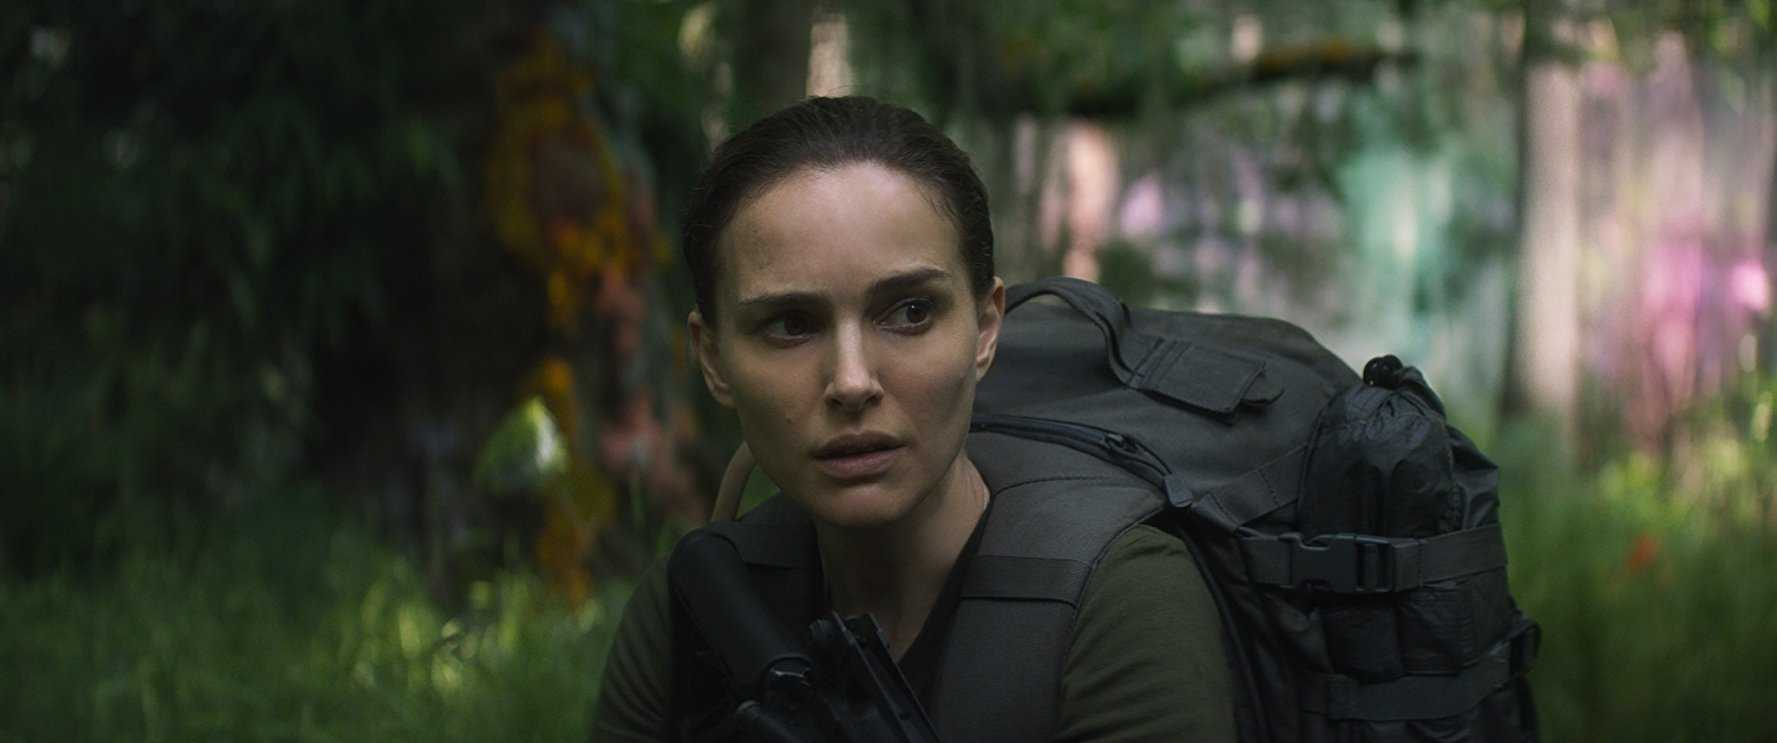 'Annihilation' Review: Natalie Portman Leads An Intelligent Visual Spectacle | annihilation film review